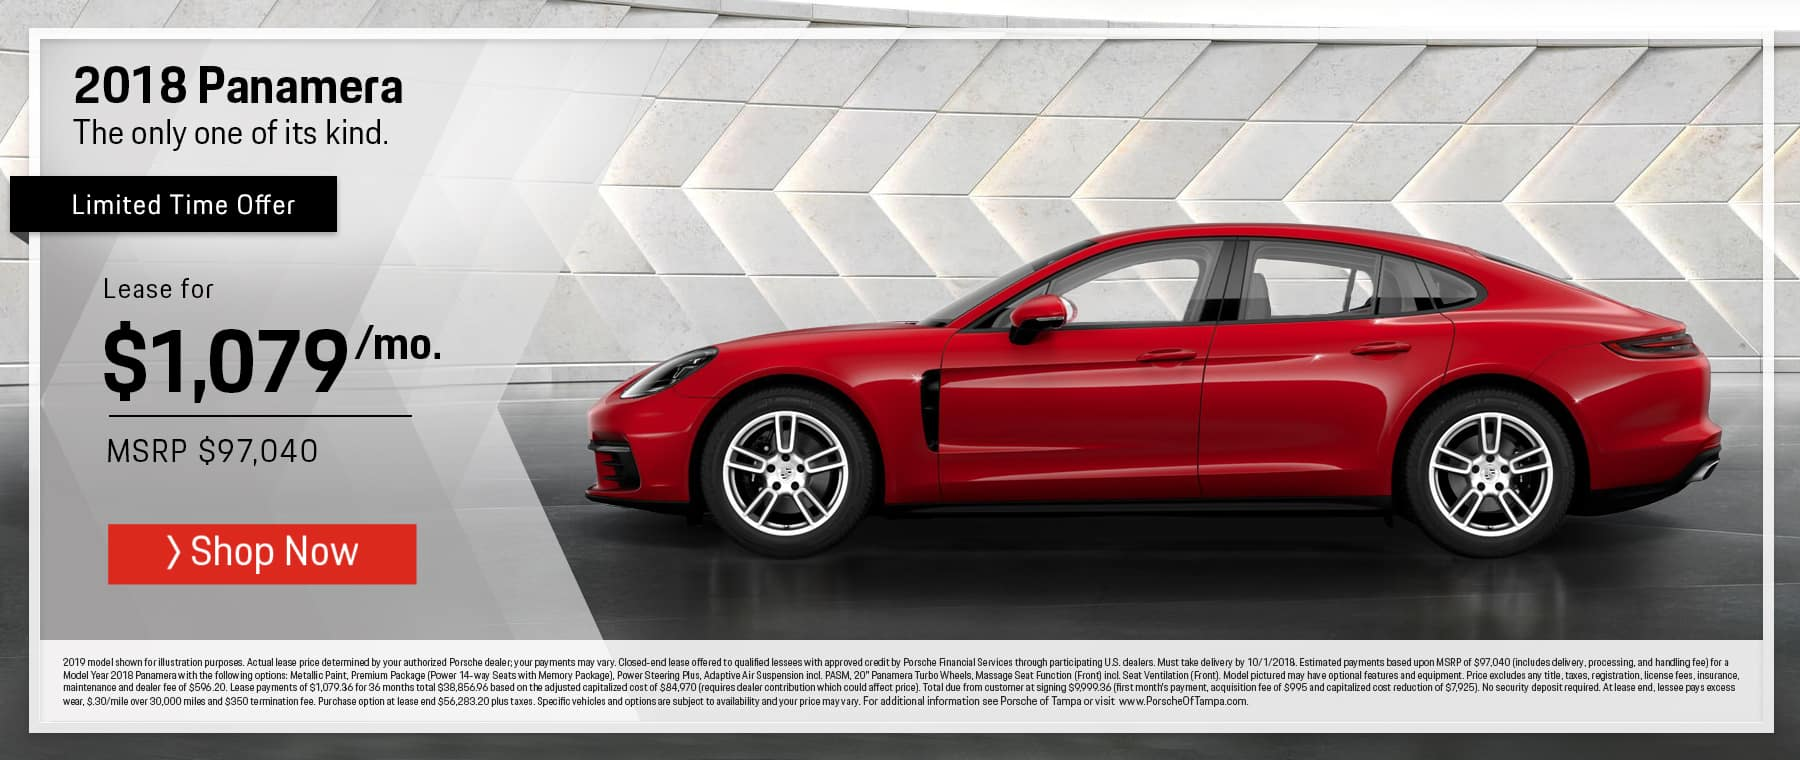 2018 Panamera August Lease Offer